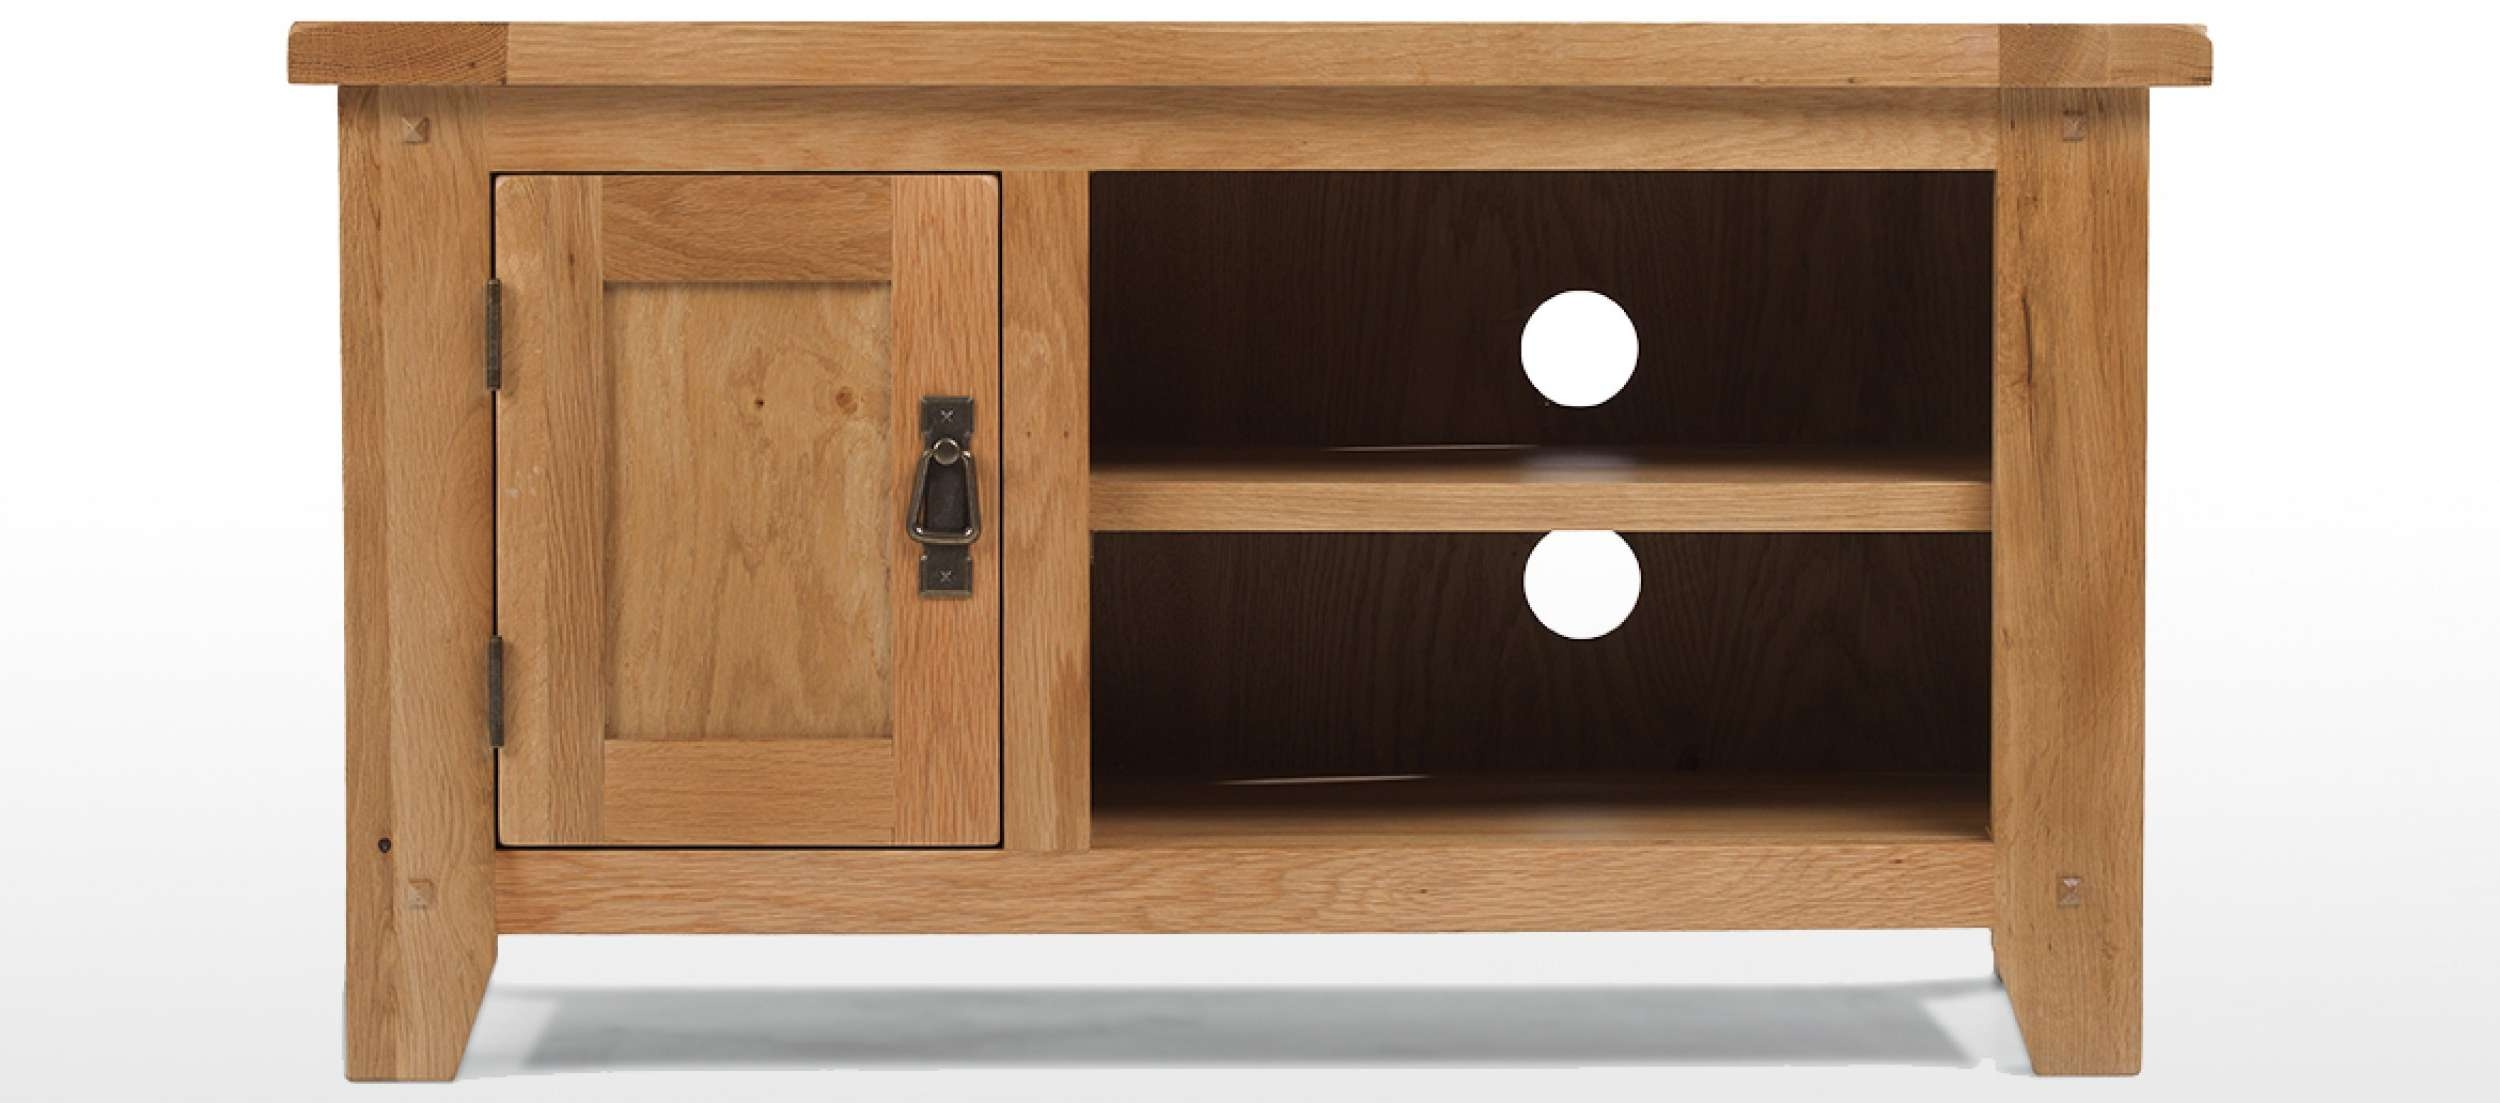 Rustic Oak Tv Unit | Quercus Living With Regard To Oak Tv Cabinets (View 16 of 20)